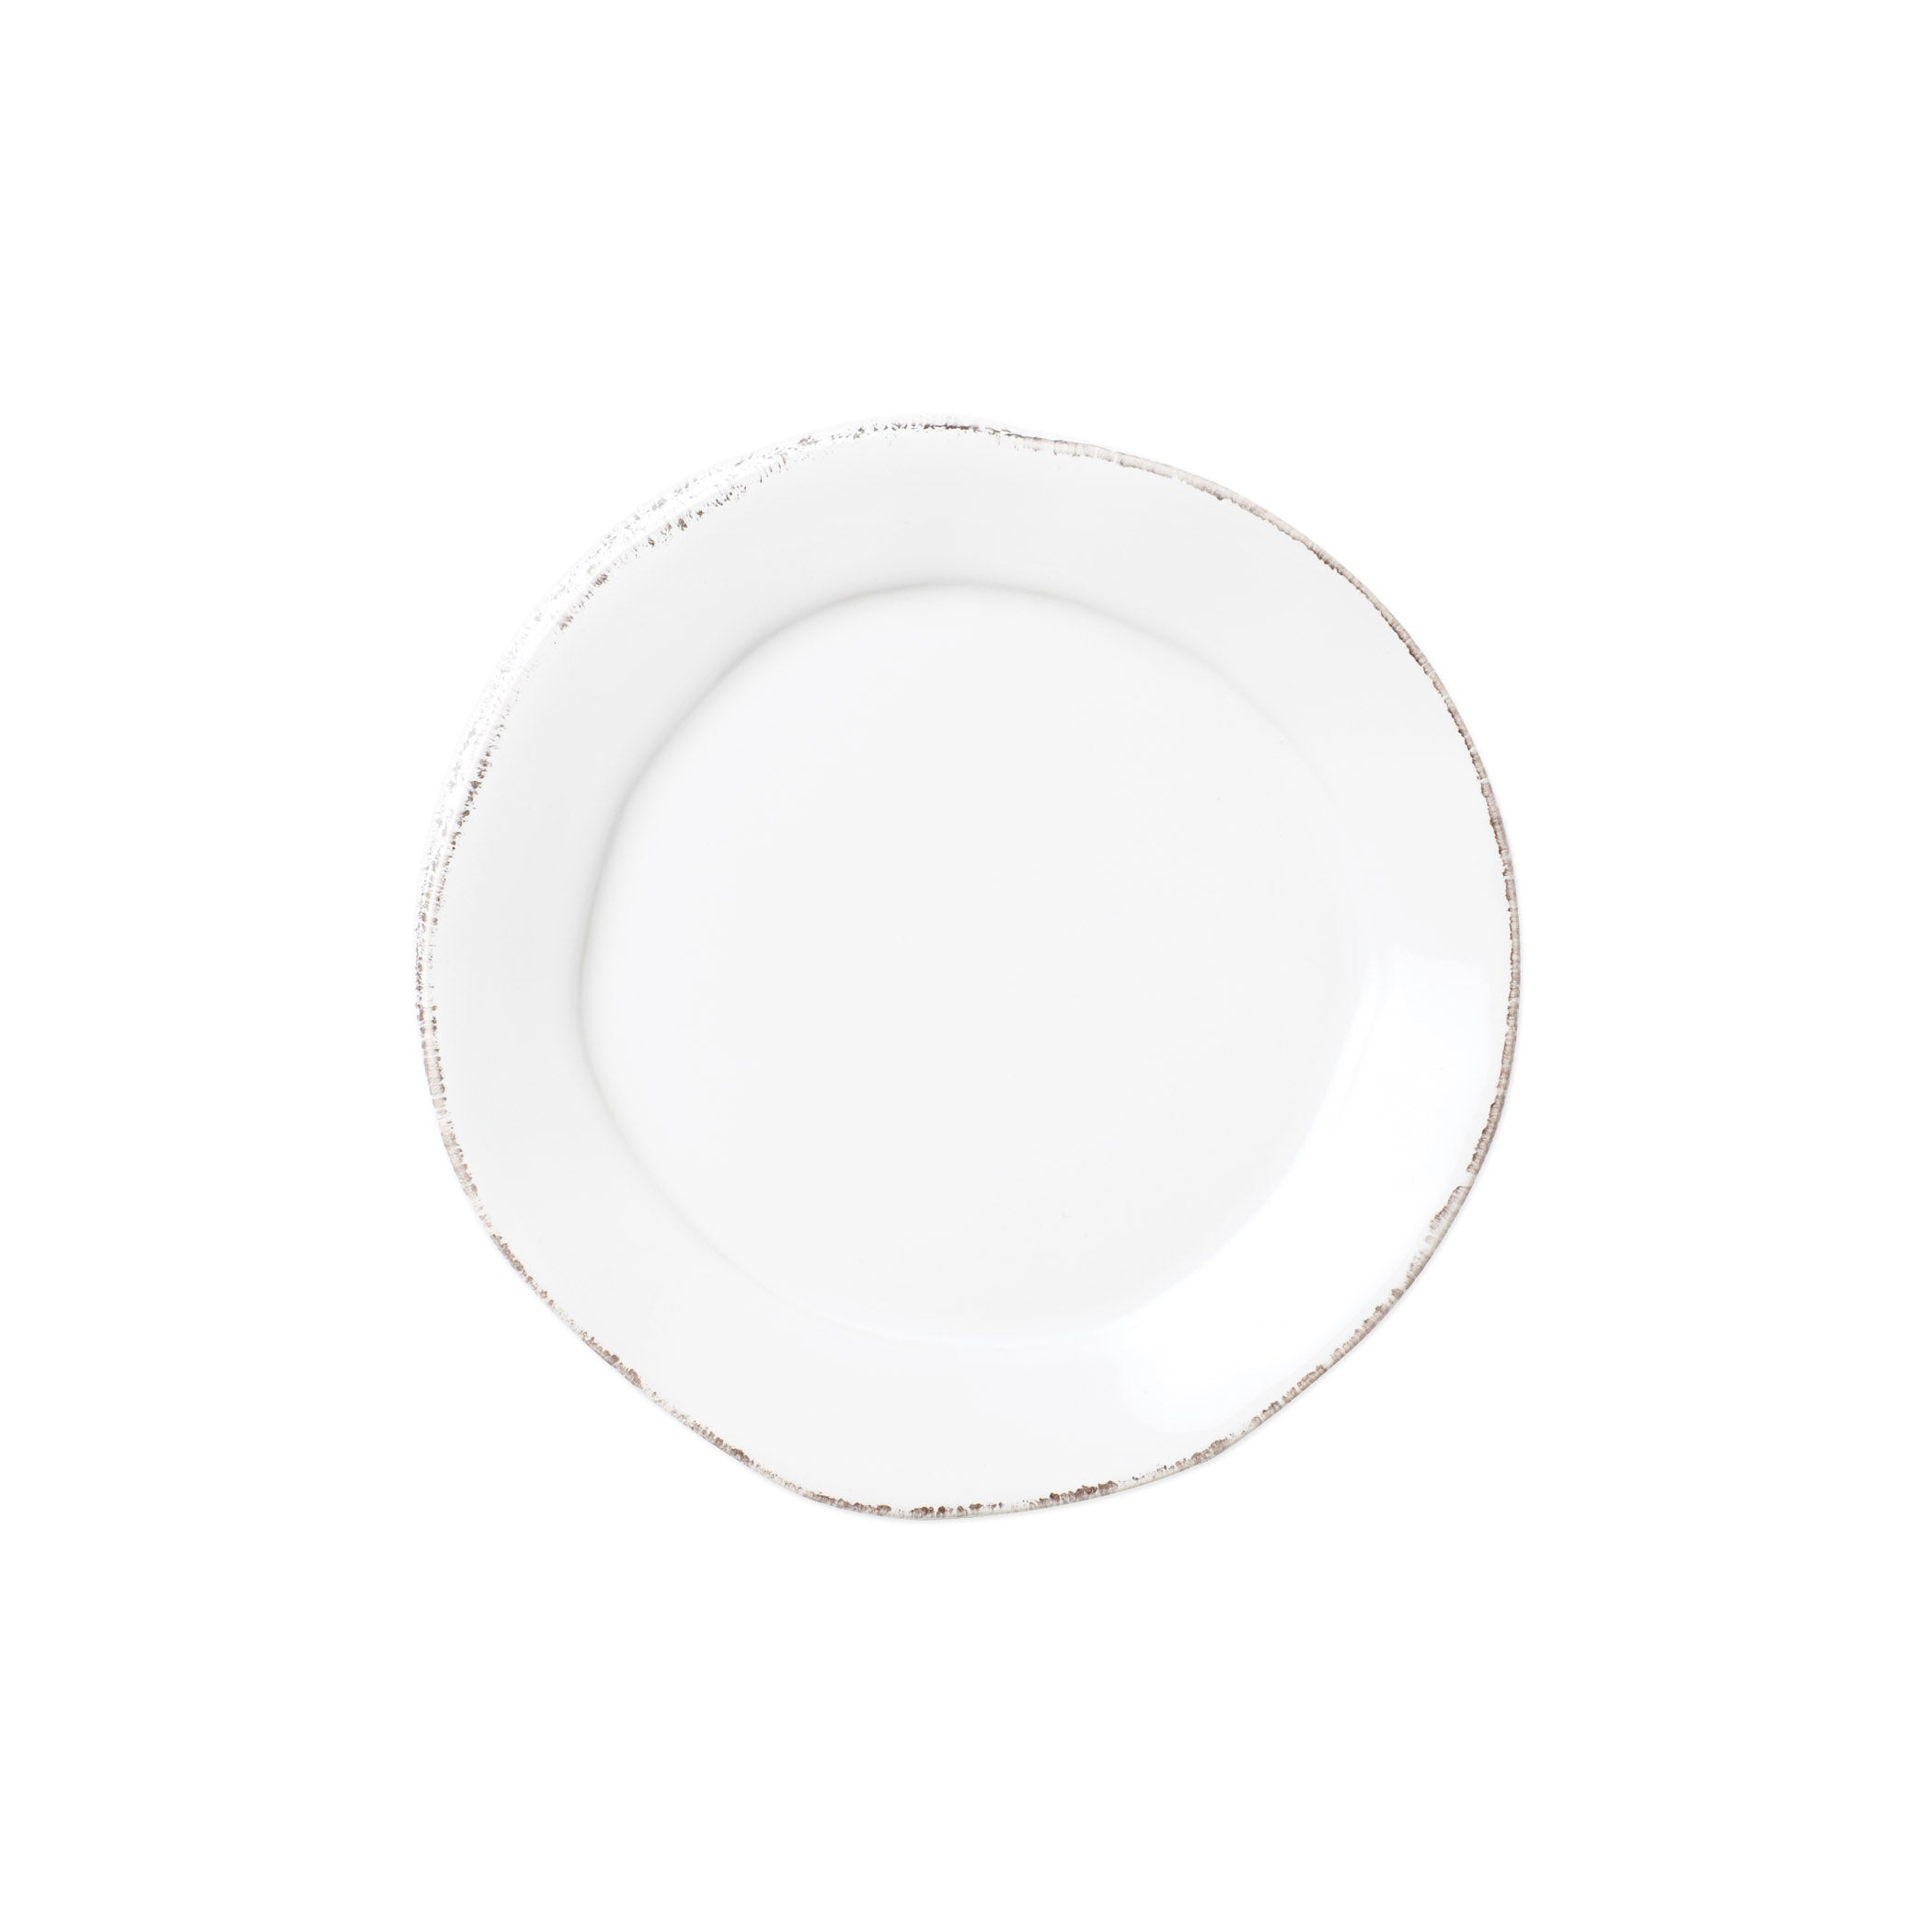 Lastra Canape Plate - Set of 4 - White